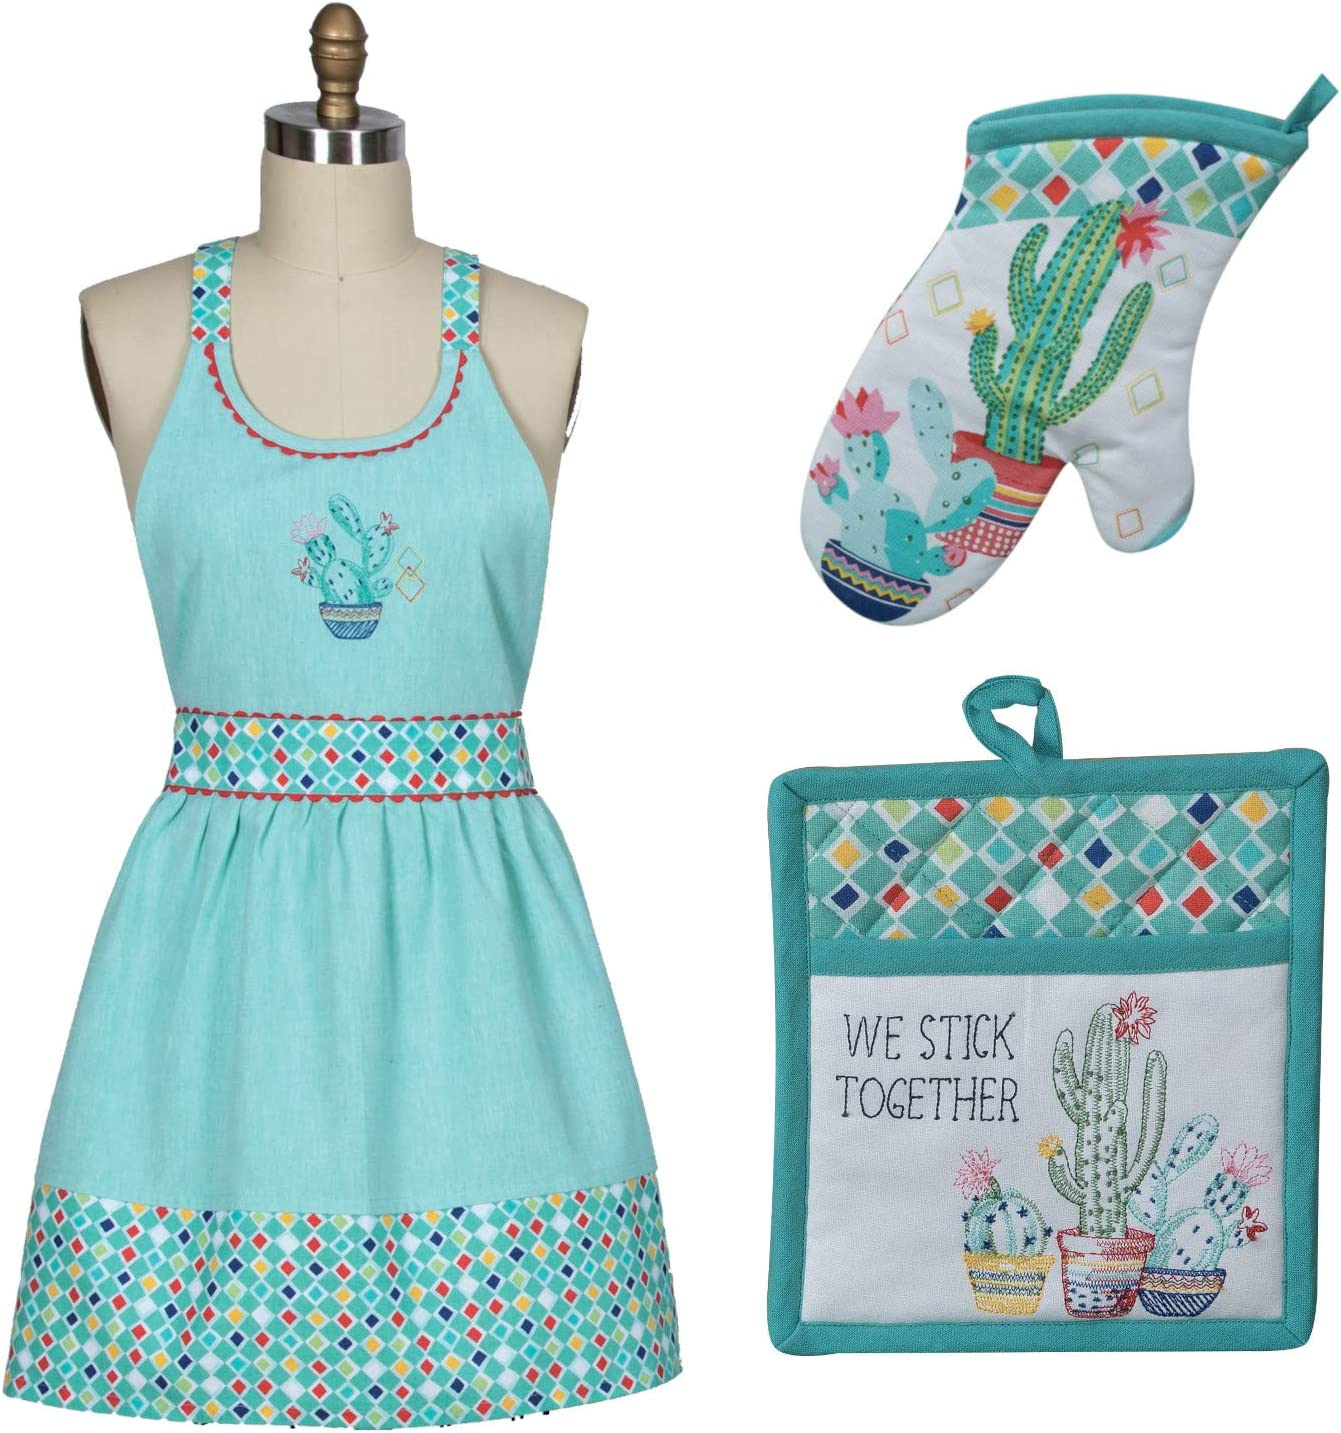 Kay Dee Designs Set of 3 Cotton Chef Apron, Oven Mitt, and Potholder Bundle in Cactus Garden Design Kitchen Linens for Cooking, Grilling, Baking Indoor Outdoor, and Ideal Gift Set